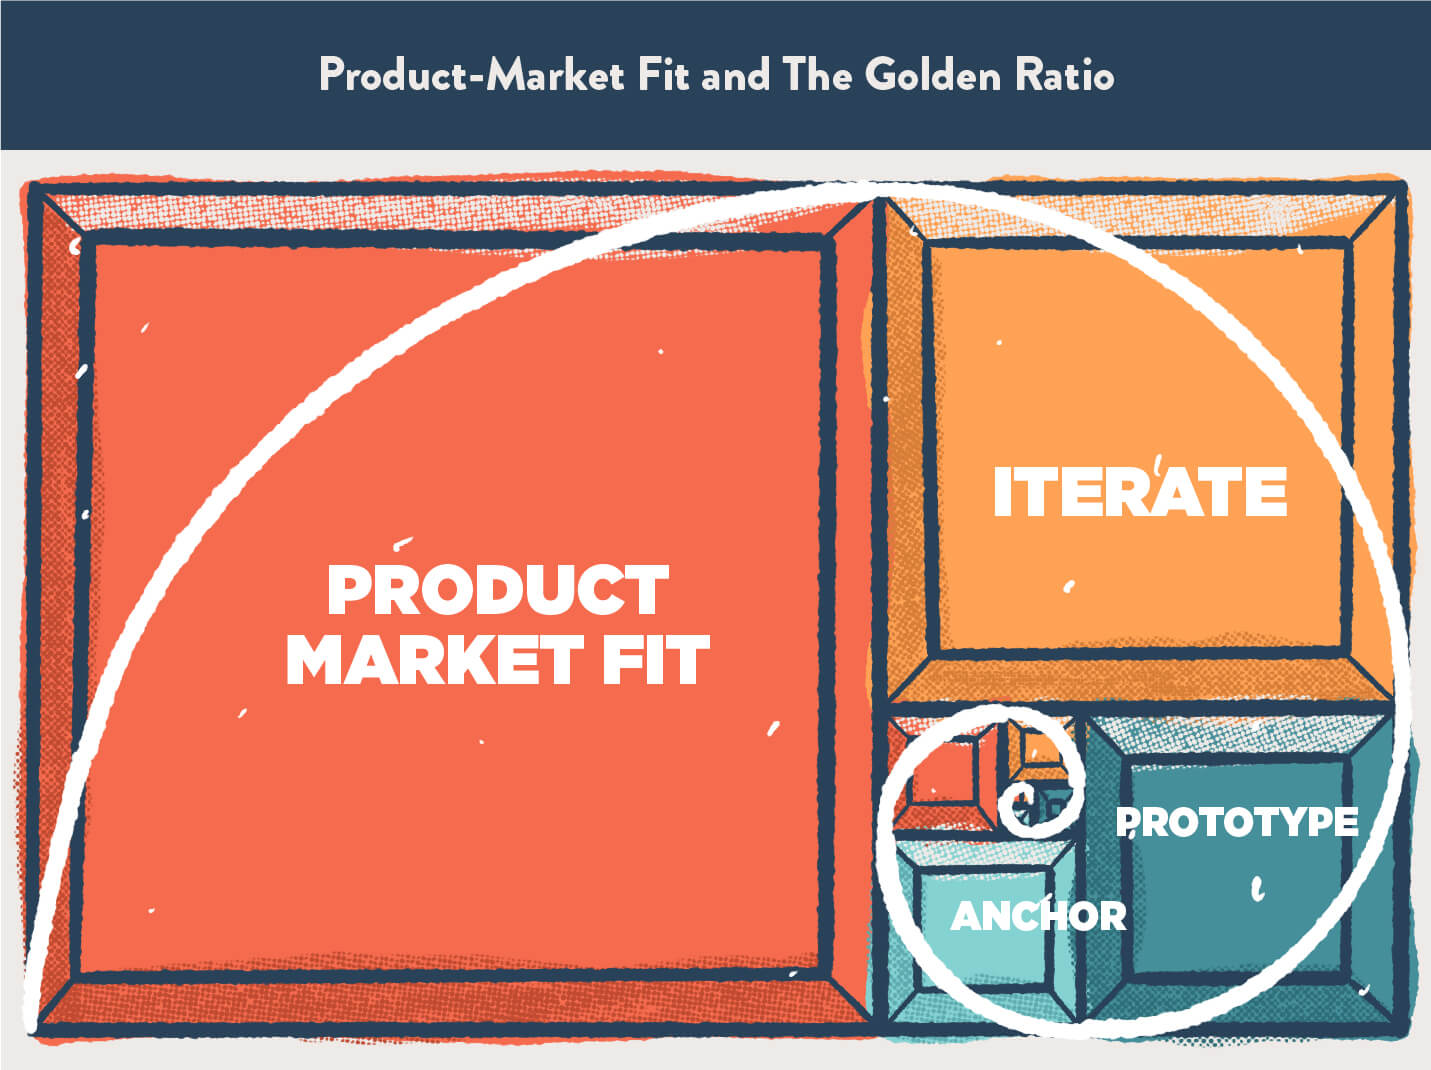 natural phenomenon of golden spiral applied to product market fit